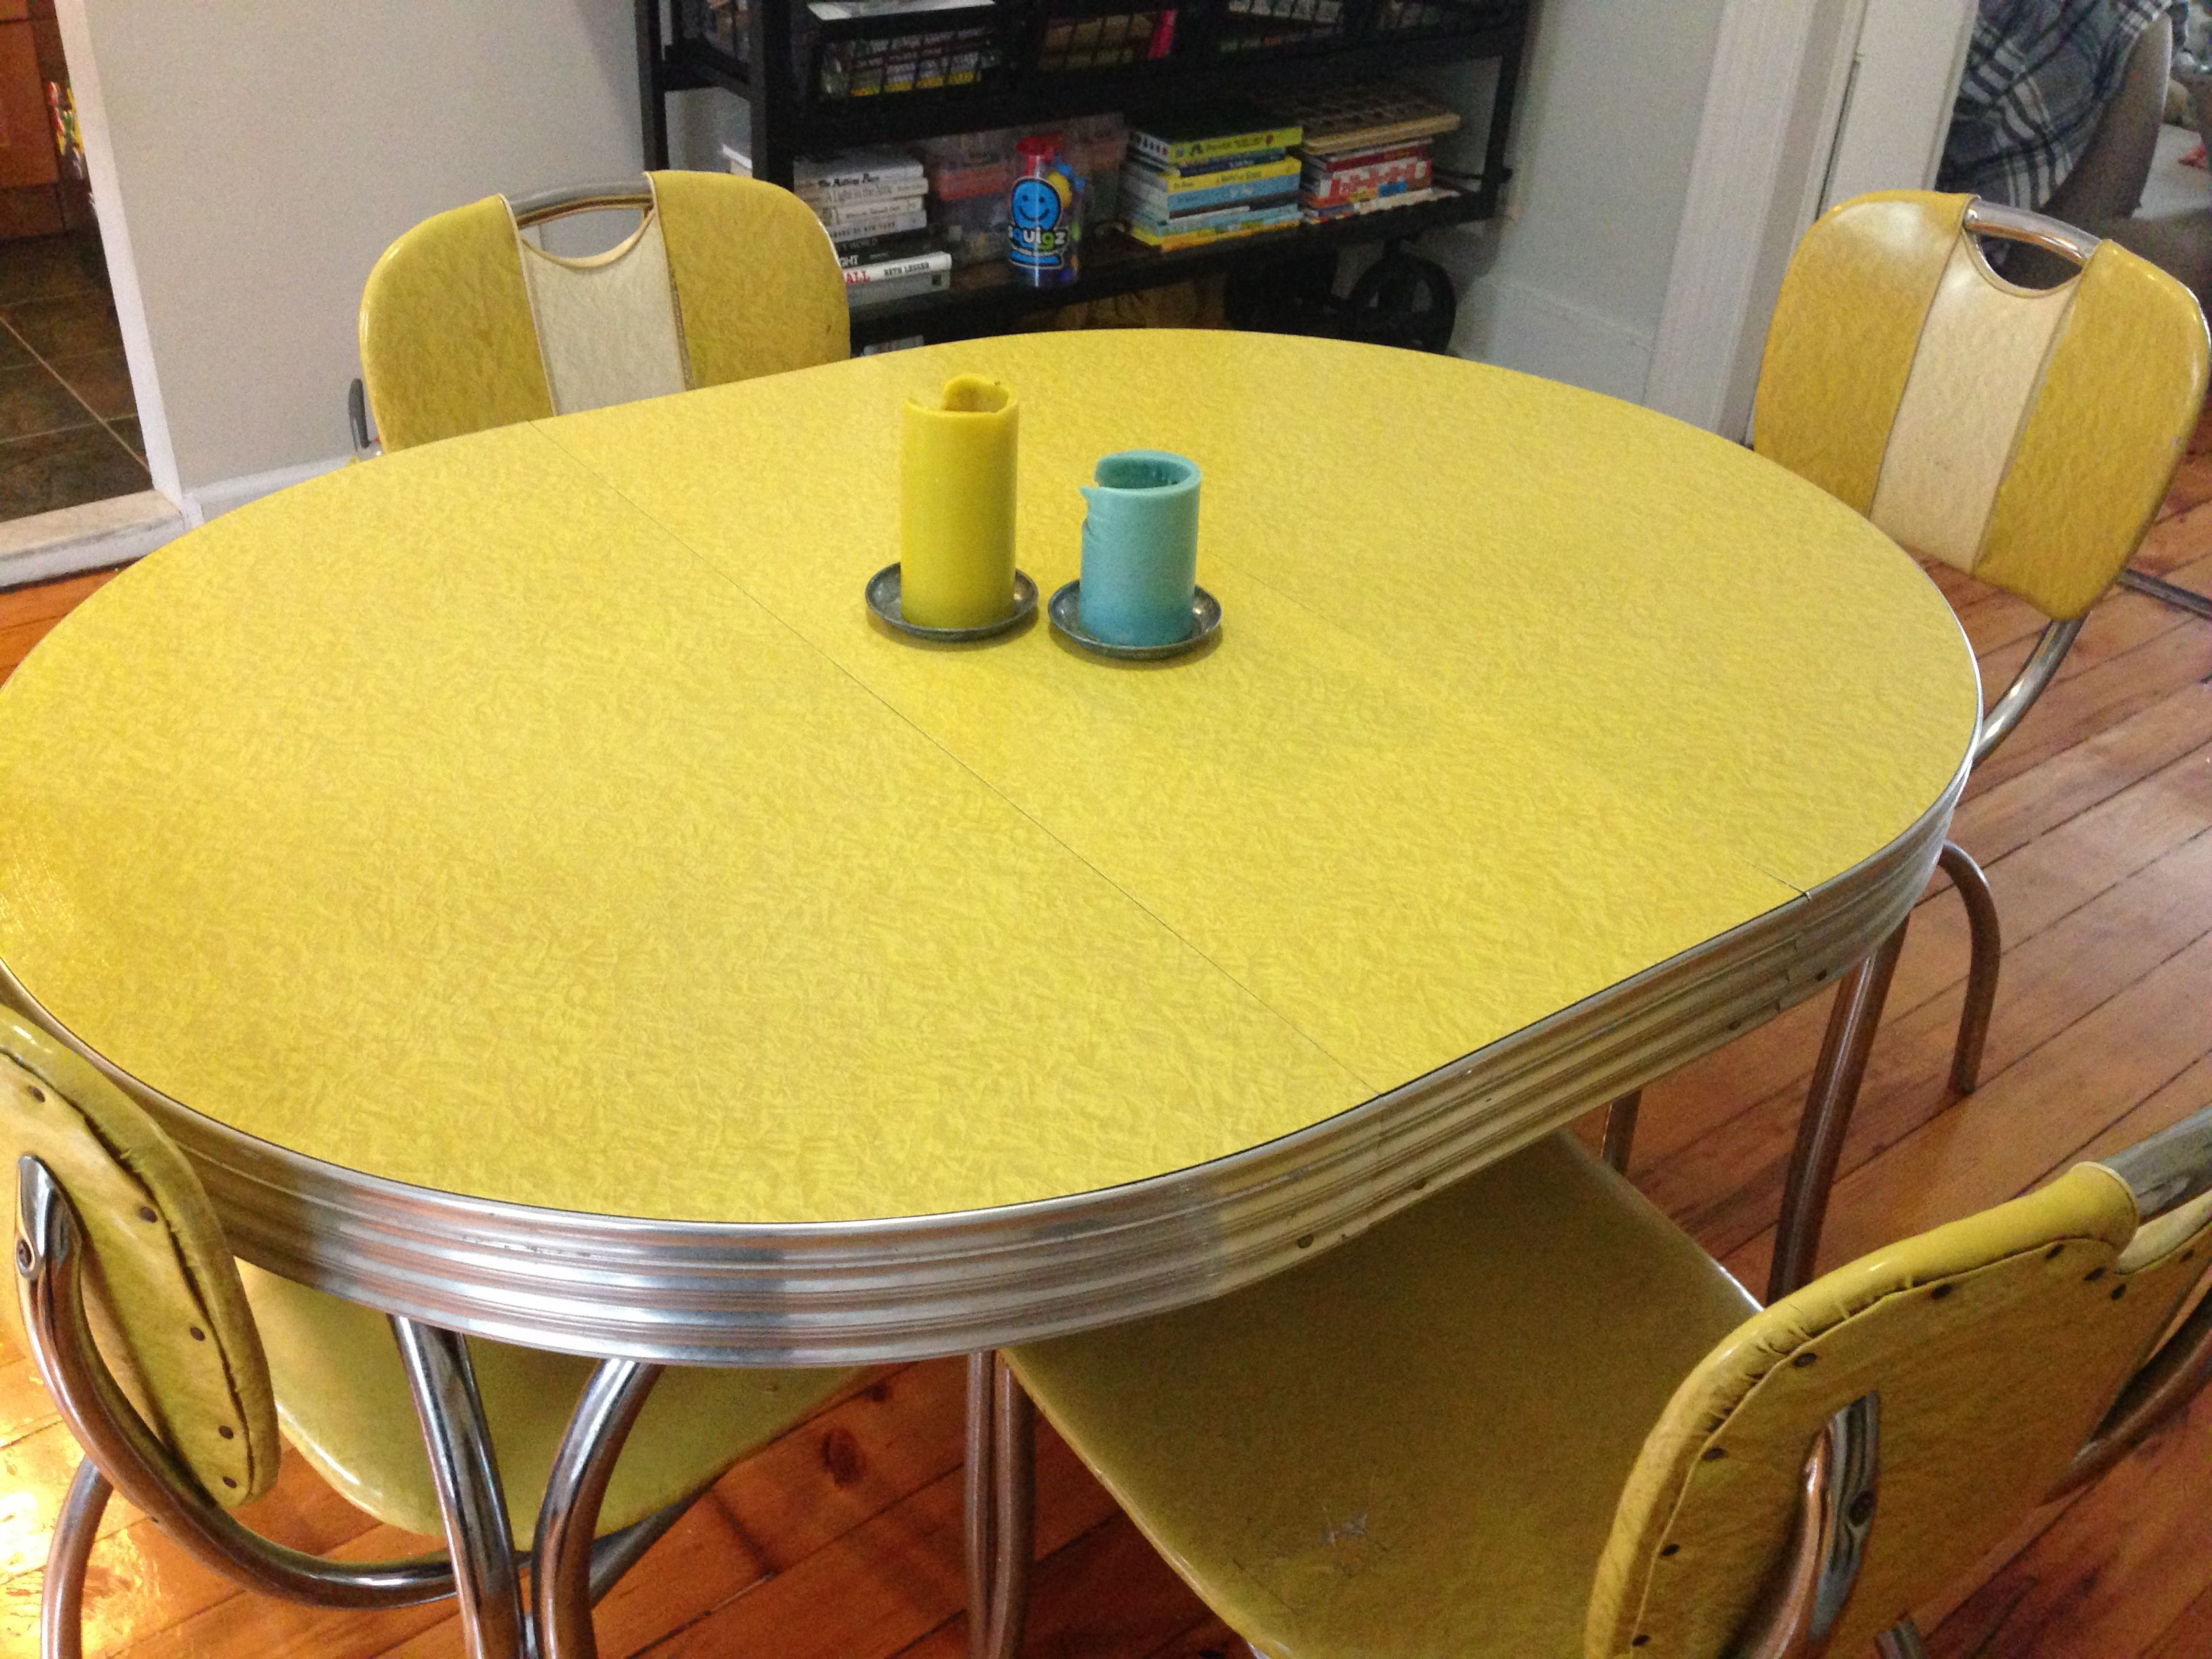 Beautiful Table And Chair Set From The 1940s For Your Kitchen Or Dining Room Condition Go Vintage Kitchen Table Retro Table And Chairs Kitchen Table Settings